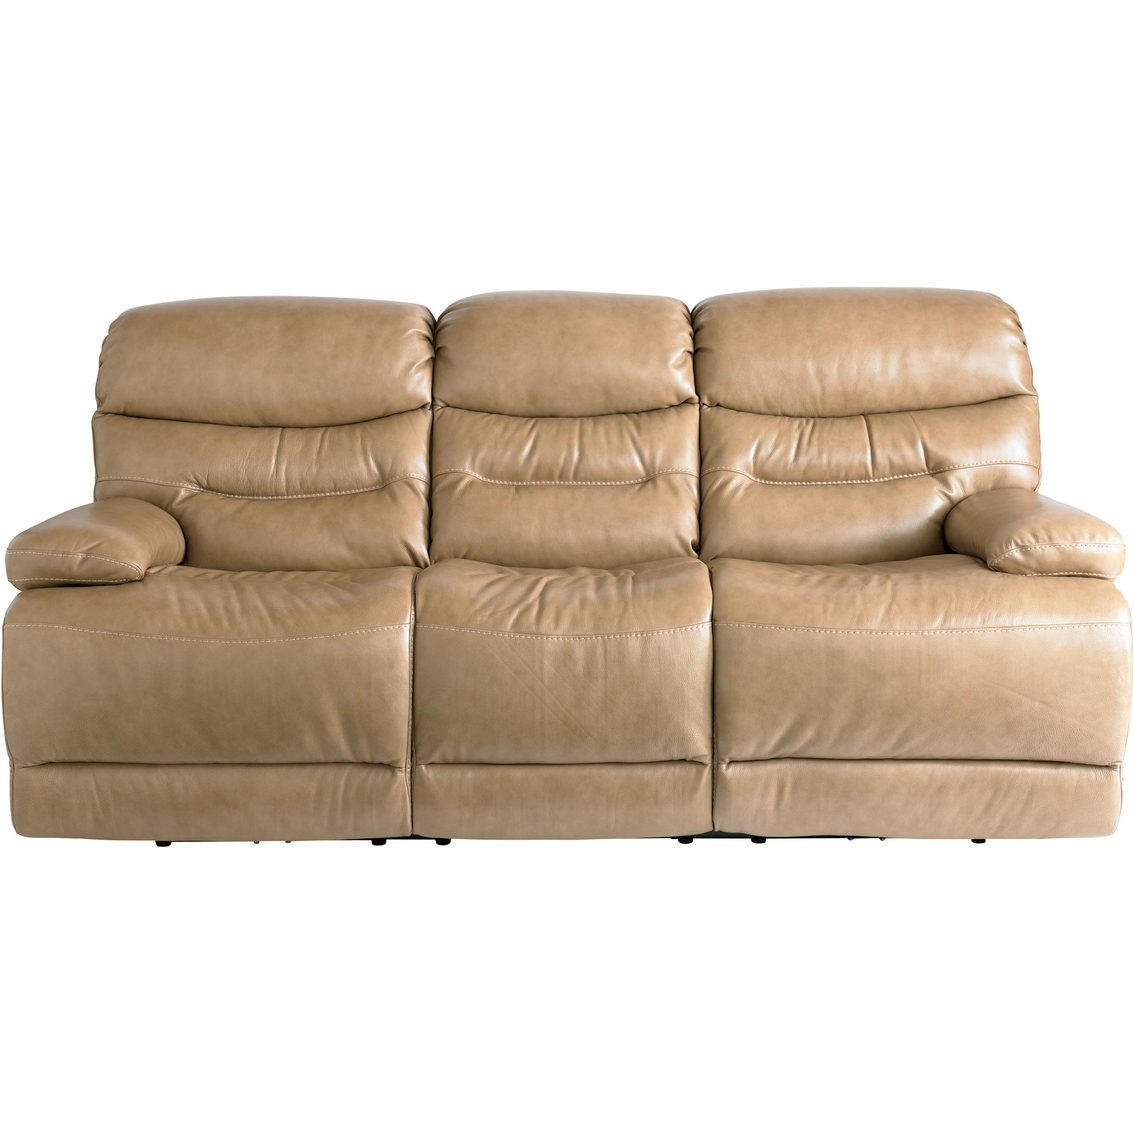 Couches Calgary Bassett Calgary Motion Sofa Sofas And Couches Home